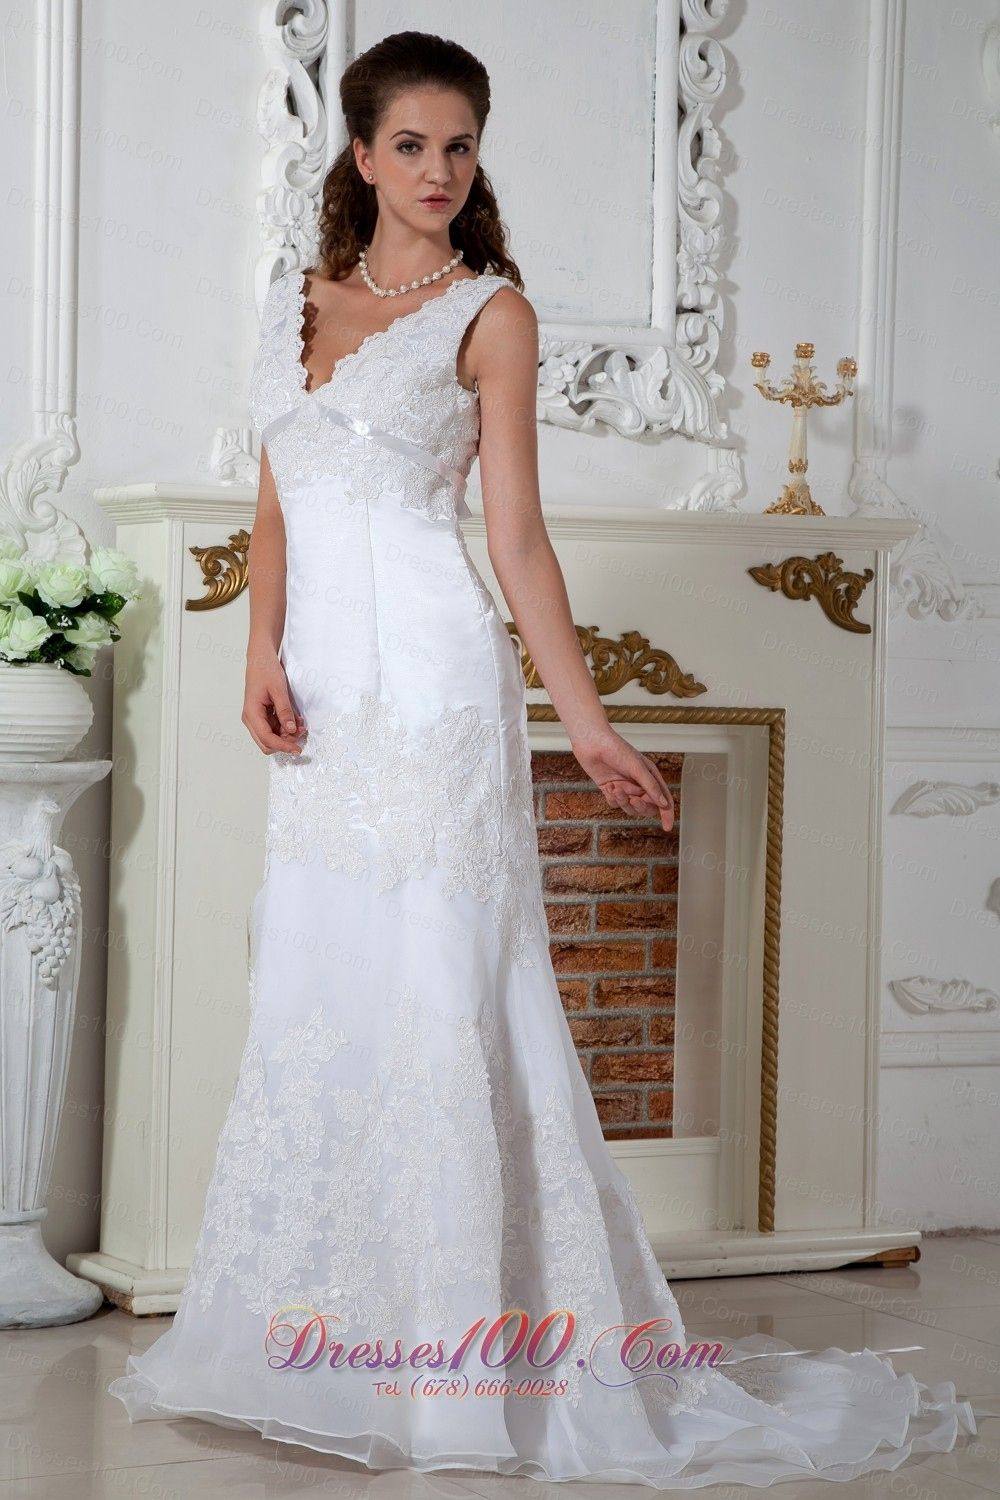 Short maternity wedding dresses  Sell Your Wedding Dress Online for Free  Best Dresses for Wedding